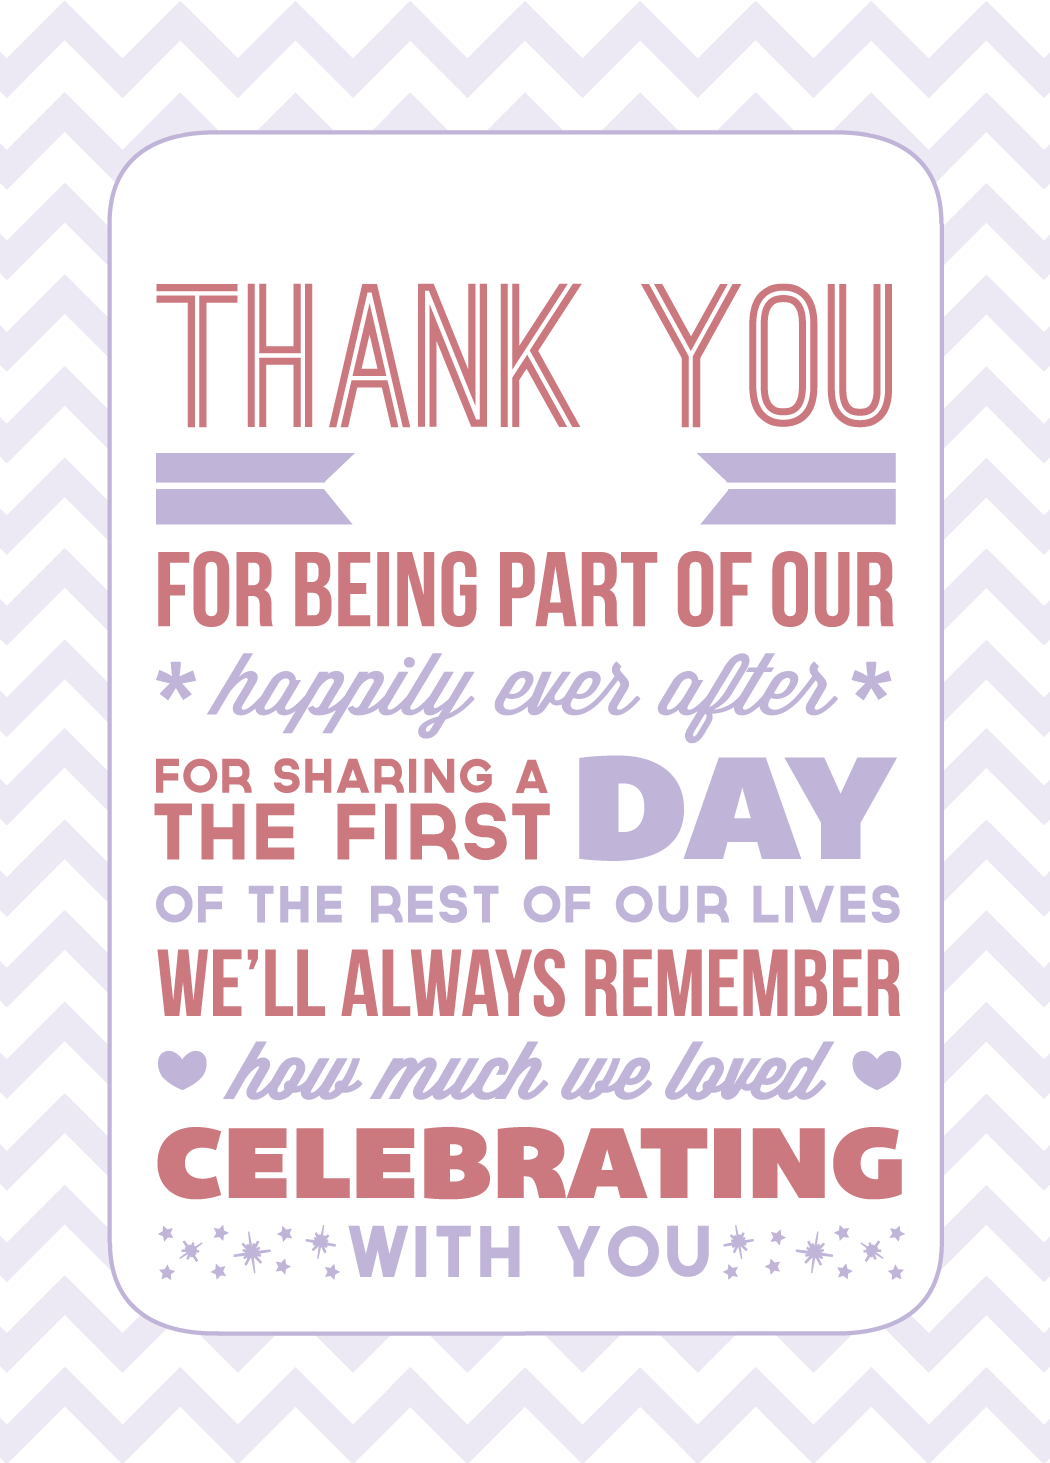 Thanks For Wedding Invitation Quotes: I Love The Wording On This Card. That World Be Nice For